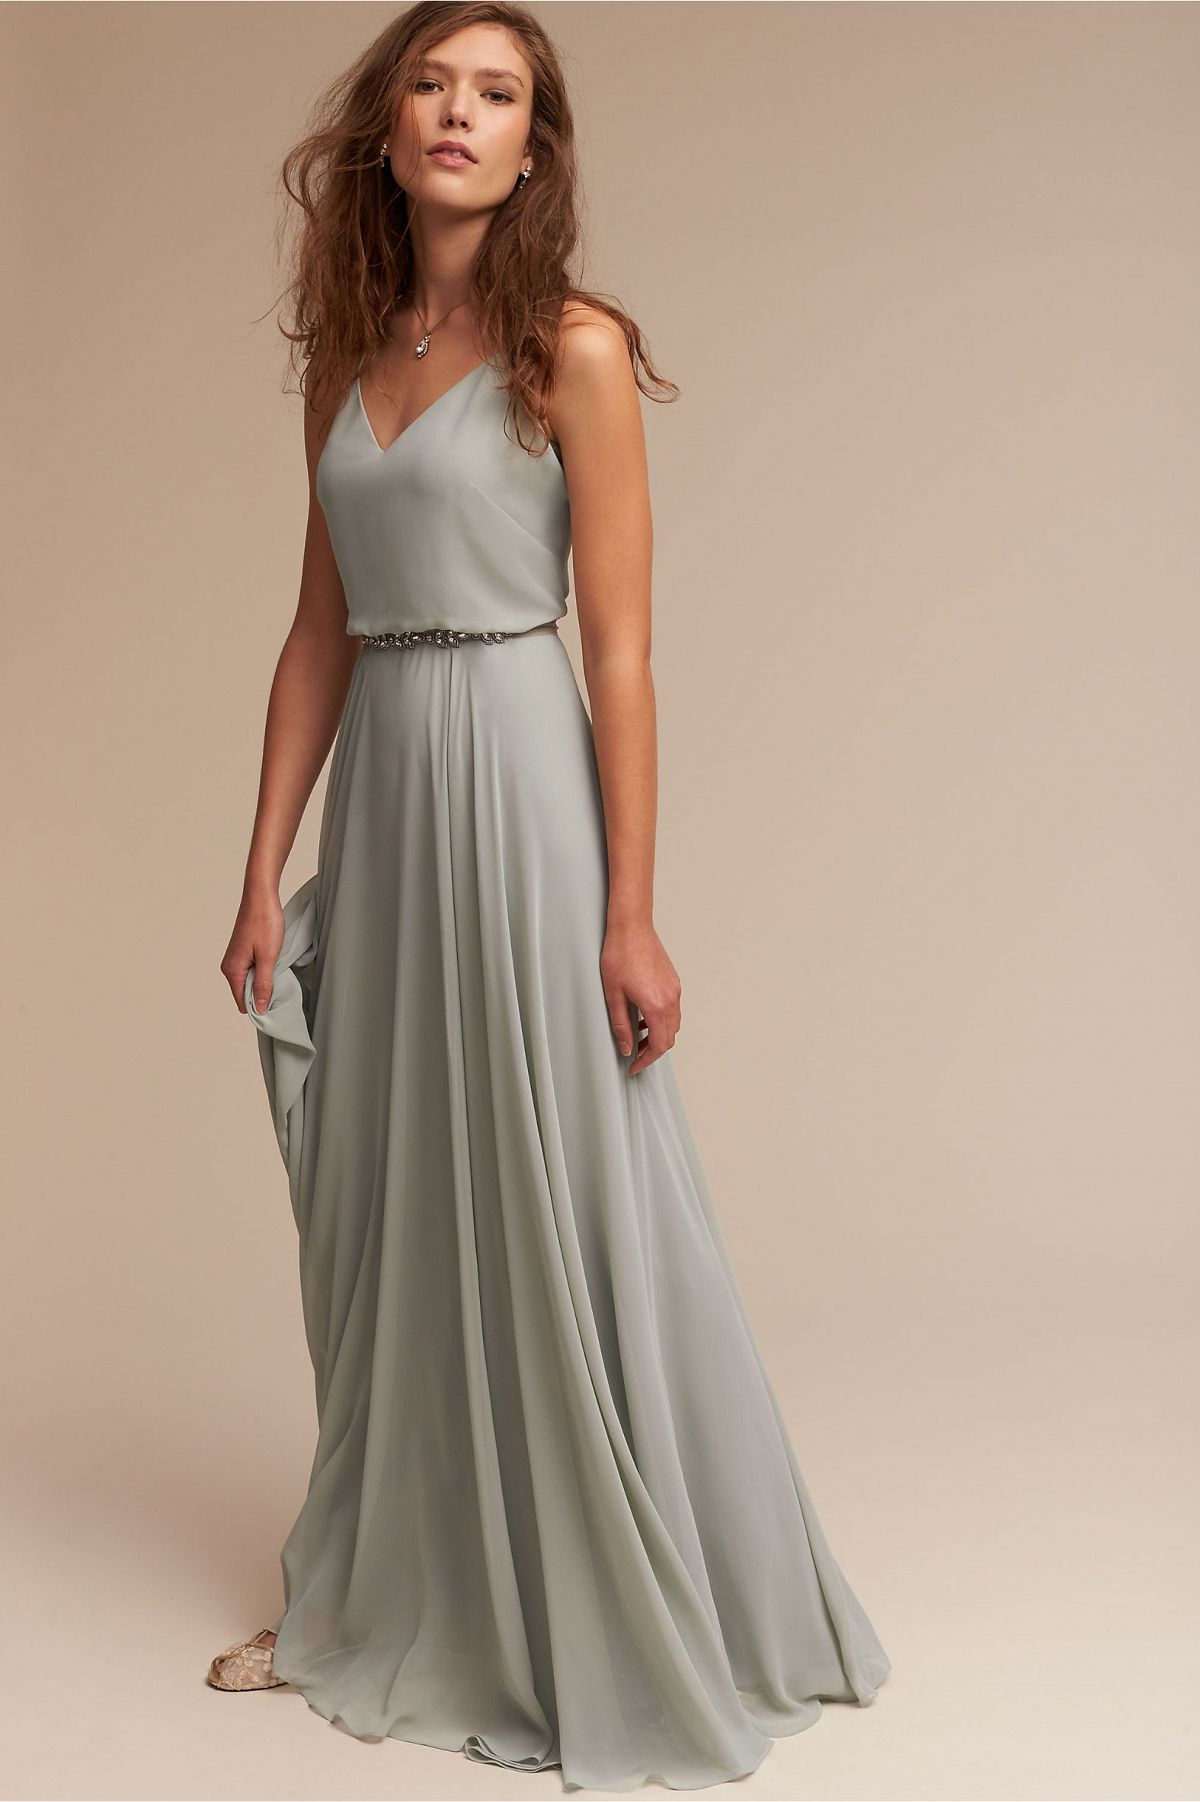 green dresses for wedding 10 bridesmaid dresses you can wear again wedding sparrow 4609